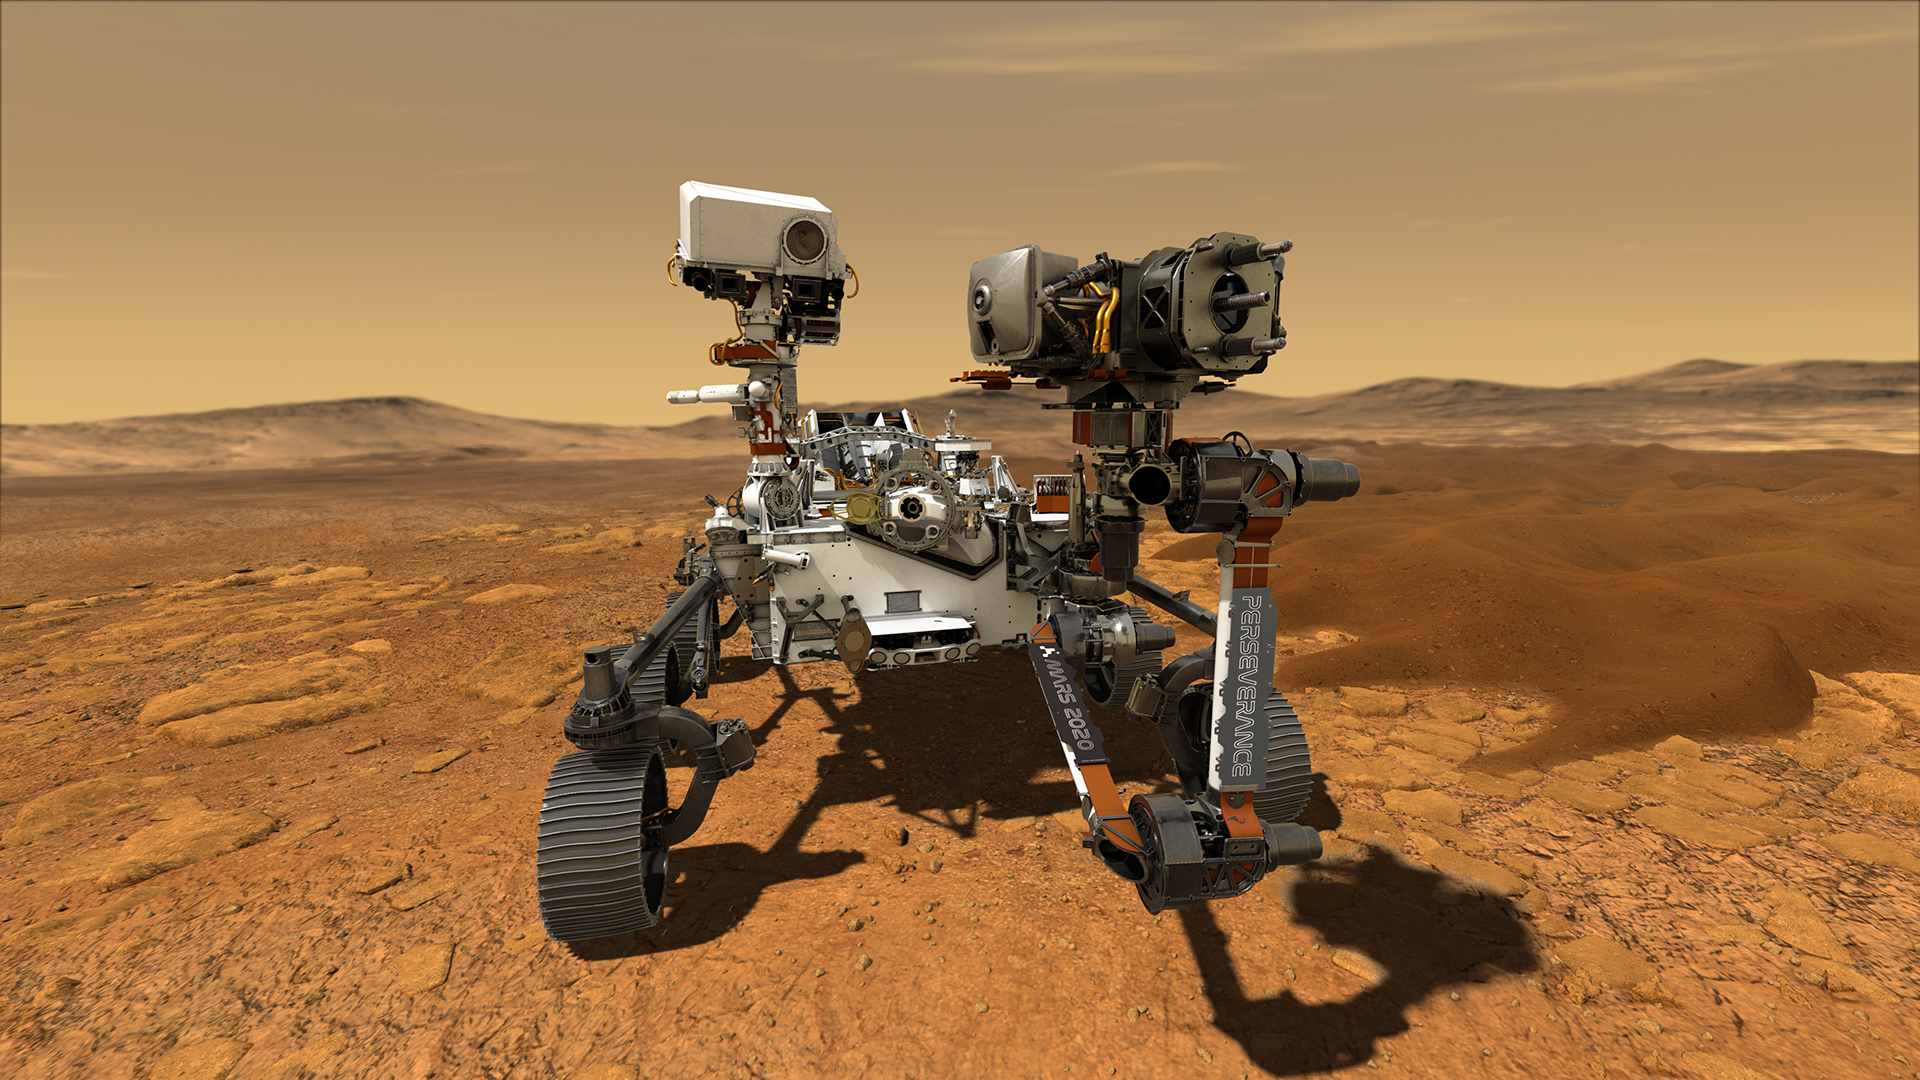 In photos: NASA's Mars Perseverance rover mission to the Red Planet thumbnail